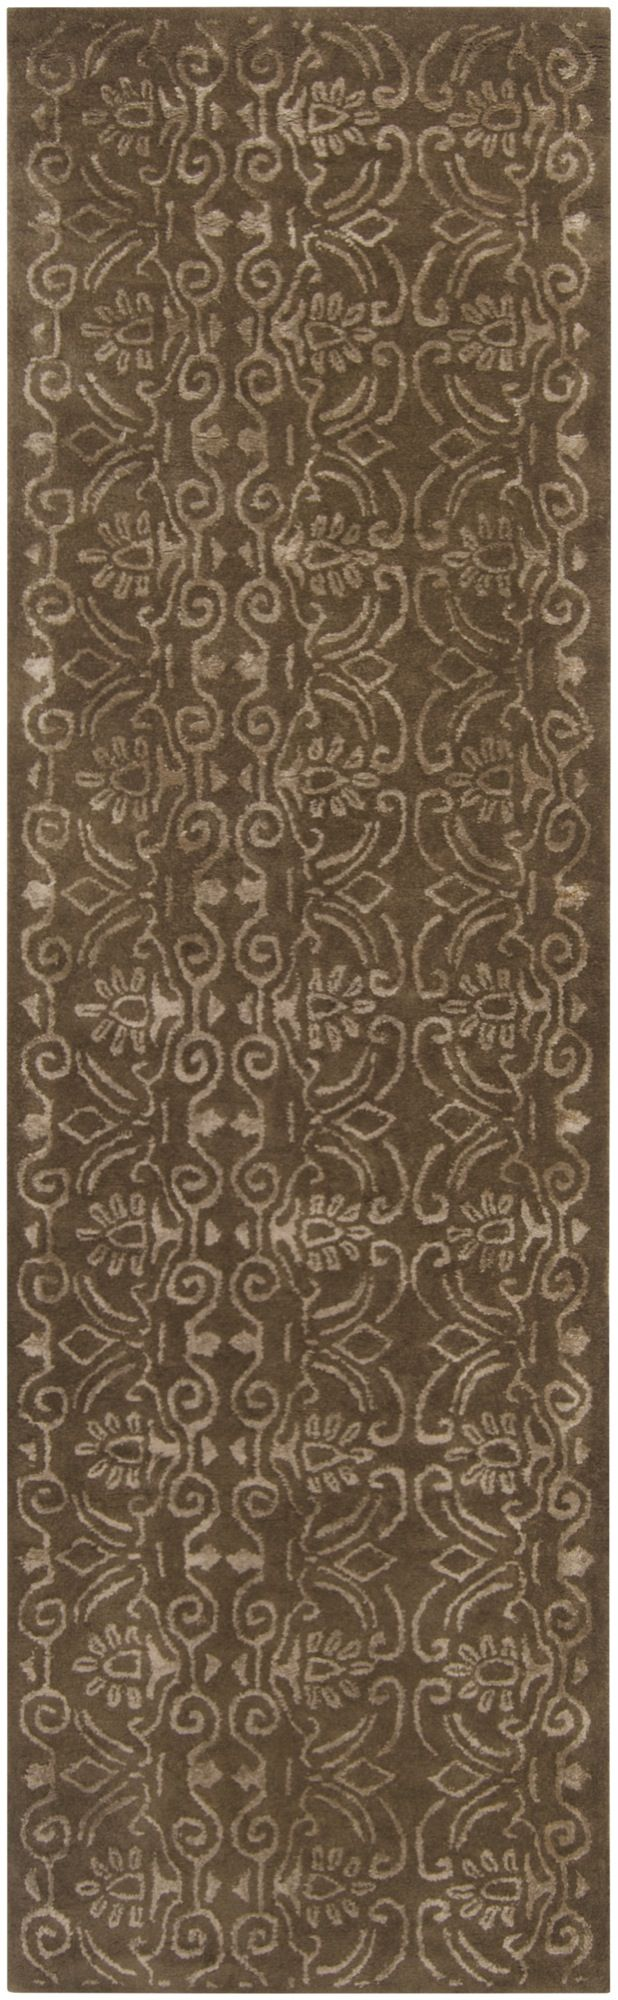 surya kharma transitional area rug collection